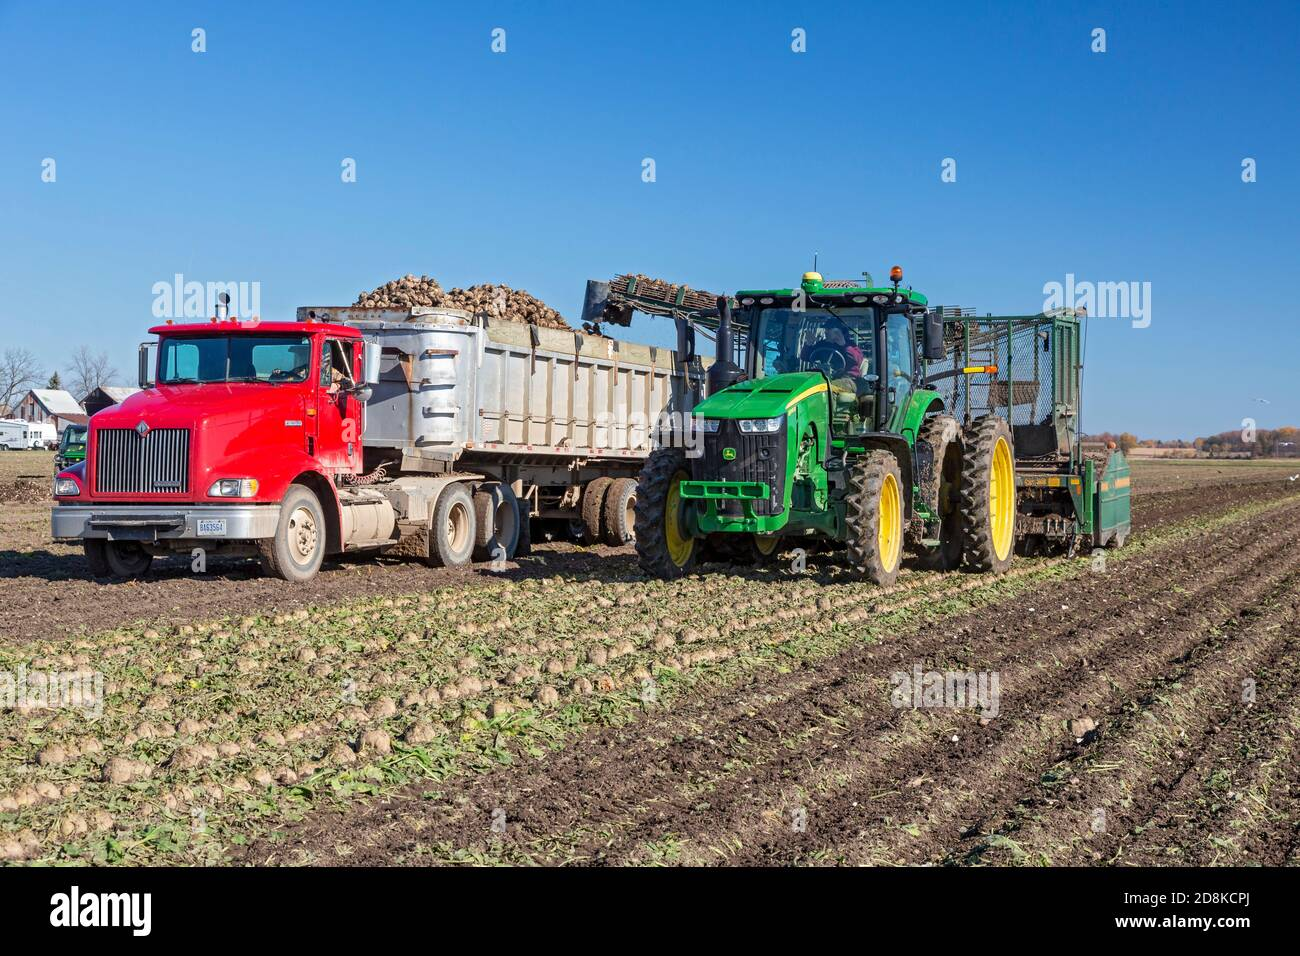 Deckerville, Michigan - Sugar beet harvest on a Michigan farm. The beets will be processed by the Michigan Sugar Company, a farmer-owned cooperative w Stock Photo